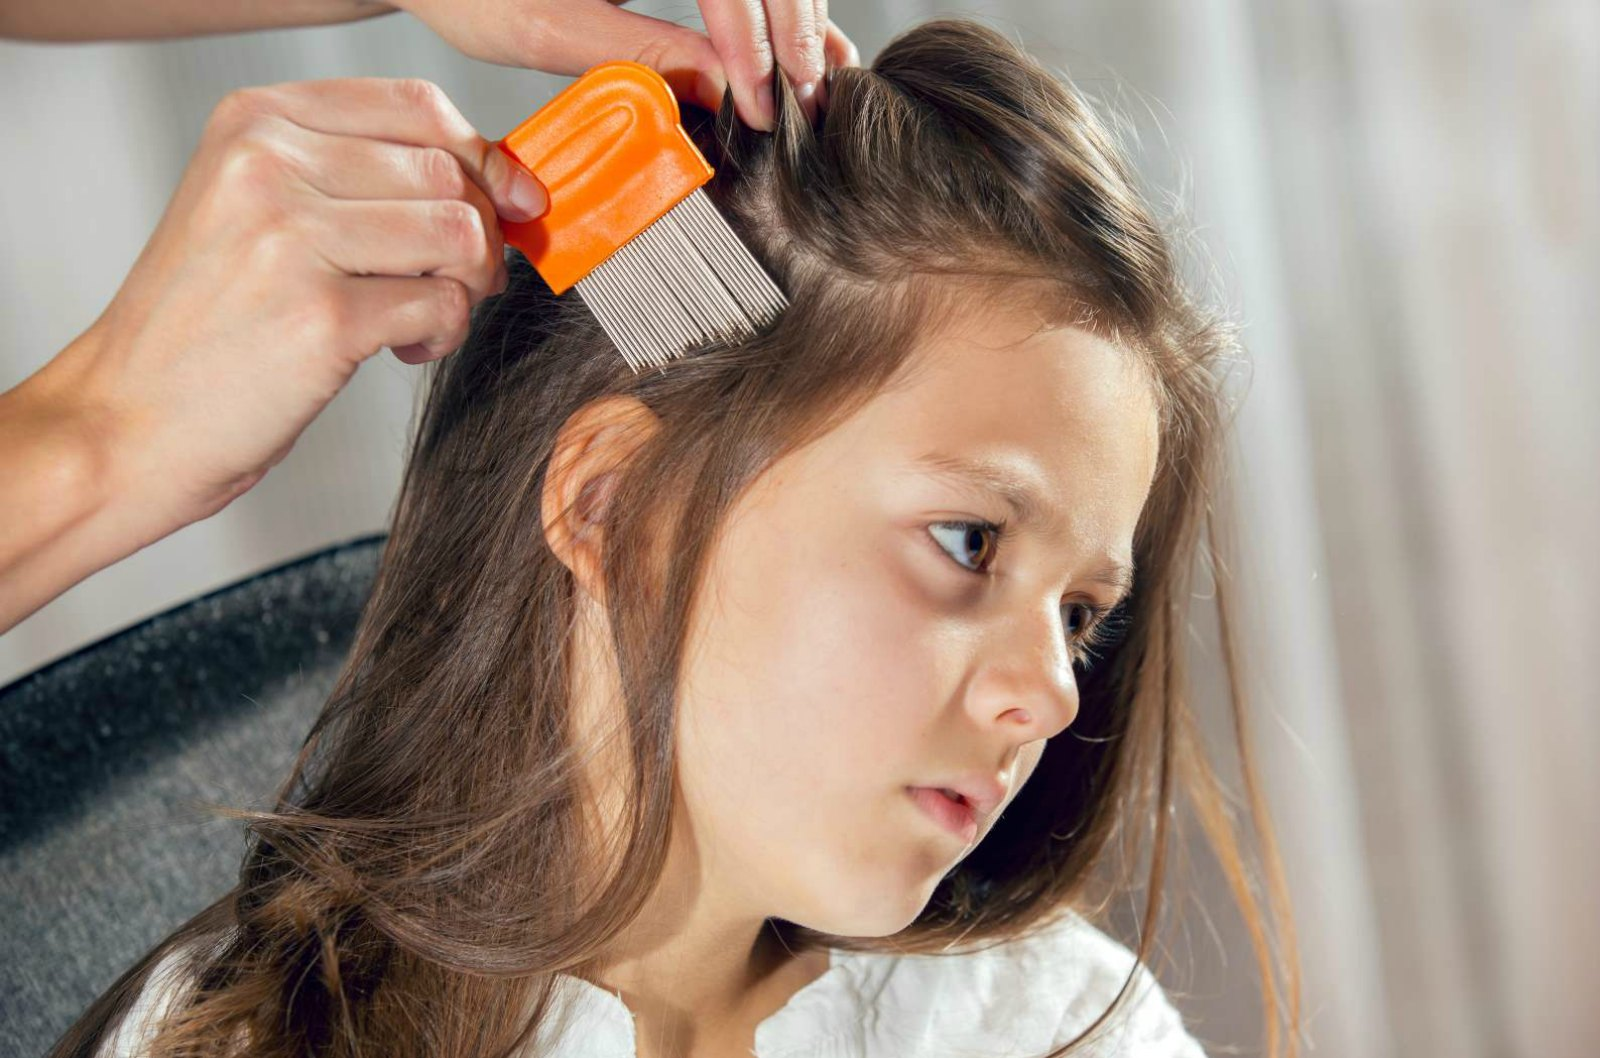 Device Kills Head Lice in One 30-Minute Application